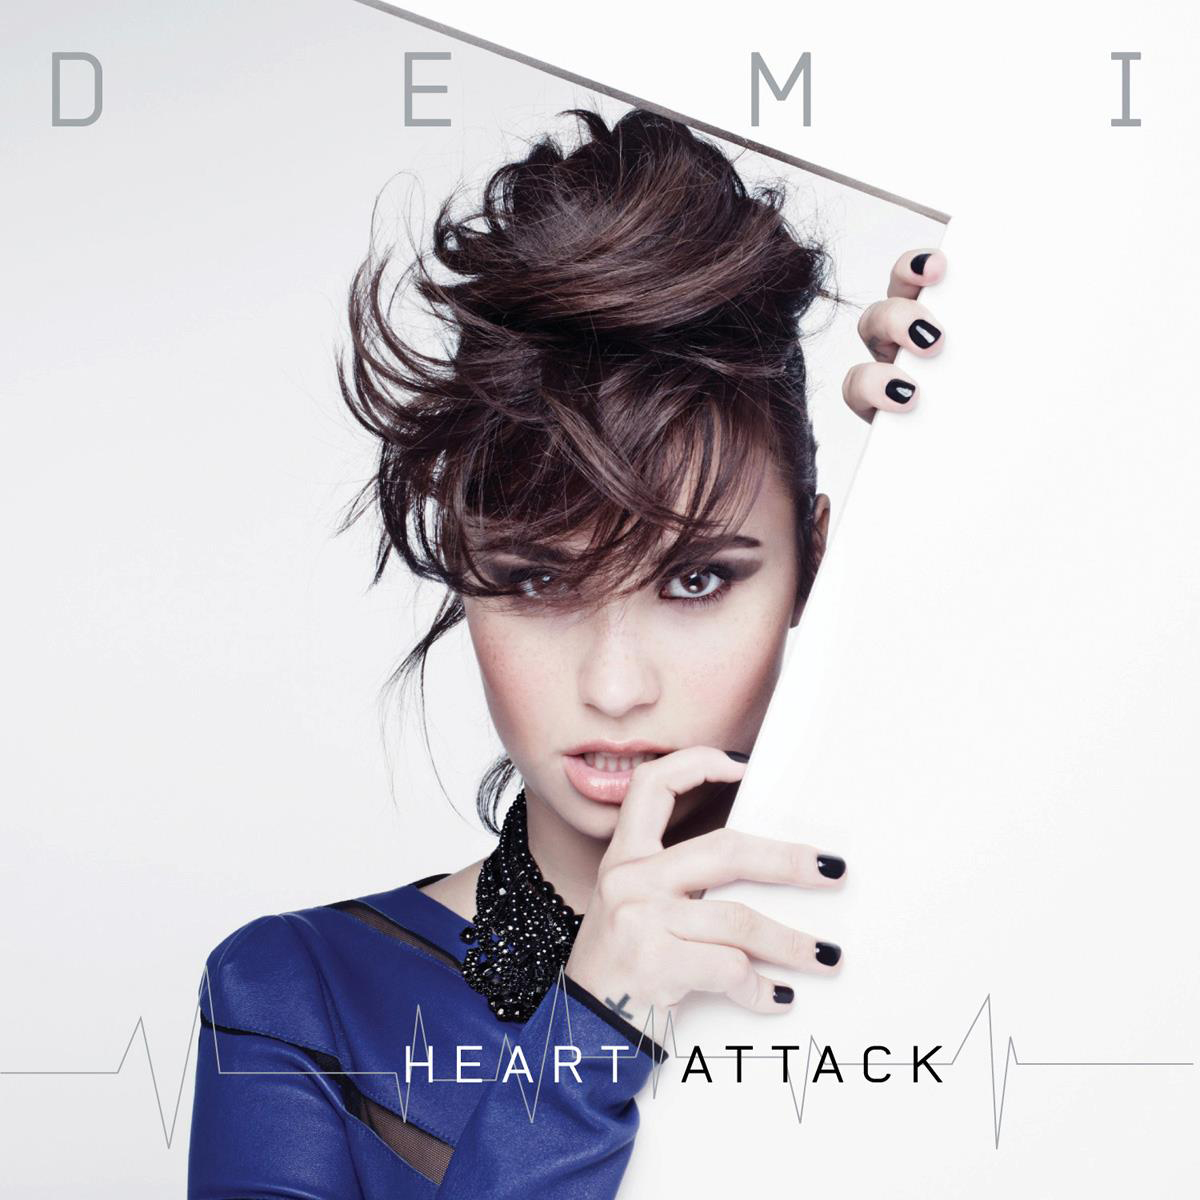 http://2.bp.blogspot.com/-m05-2xA3B14/URqDjLe1aiI/AAAAAAAASOI/nnE_WqulwPU/s1600/Demi-Lovato-Heart-Attack-official-single-artwork-march-4-2013.jpg